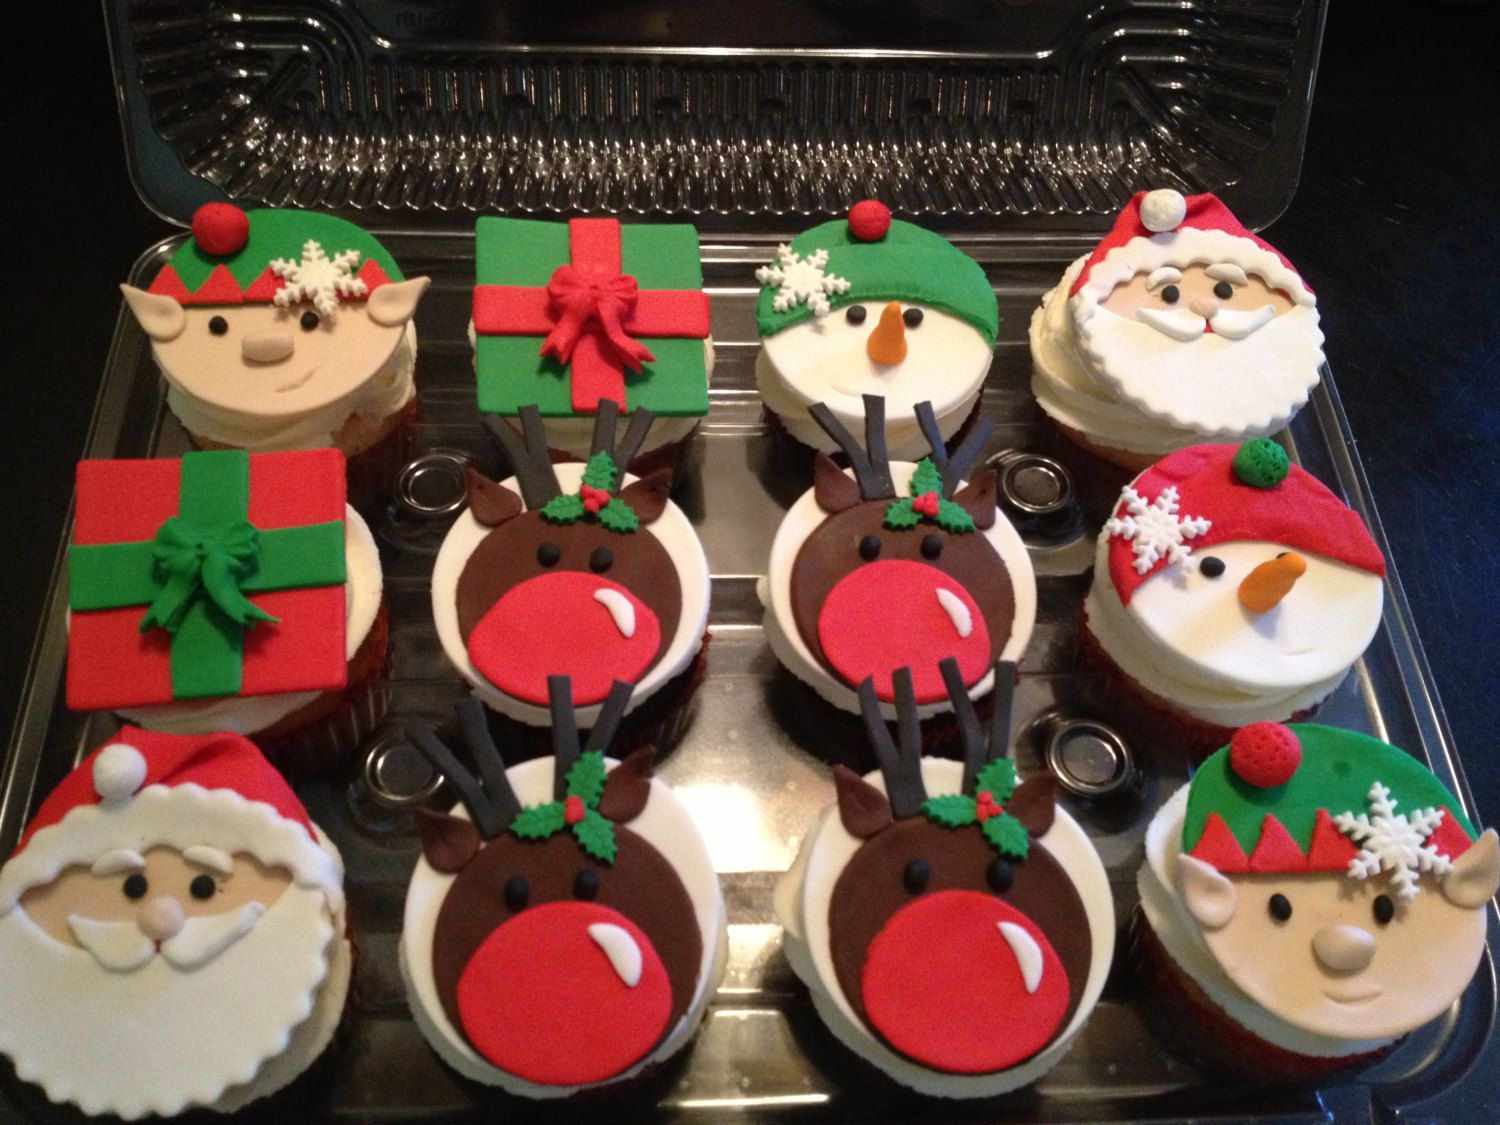 Christmas Fondant Cupcake Toppers 6 by PeaceLoveandCakeNY on Etsy | Christmas cupcake toppers, Christmas cupcakes, Fondant cupcake toppers